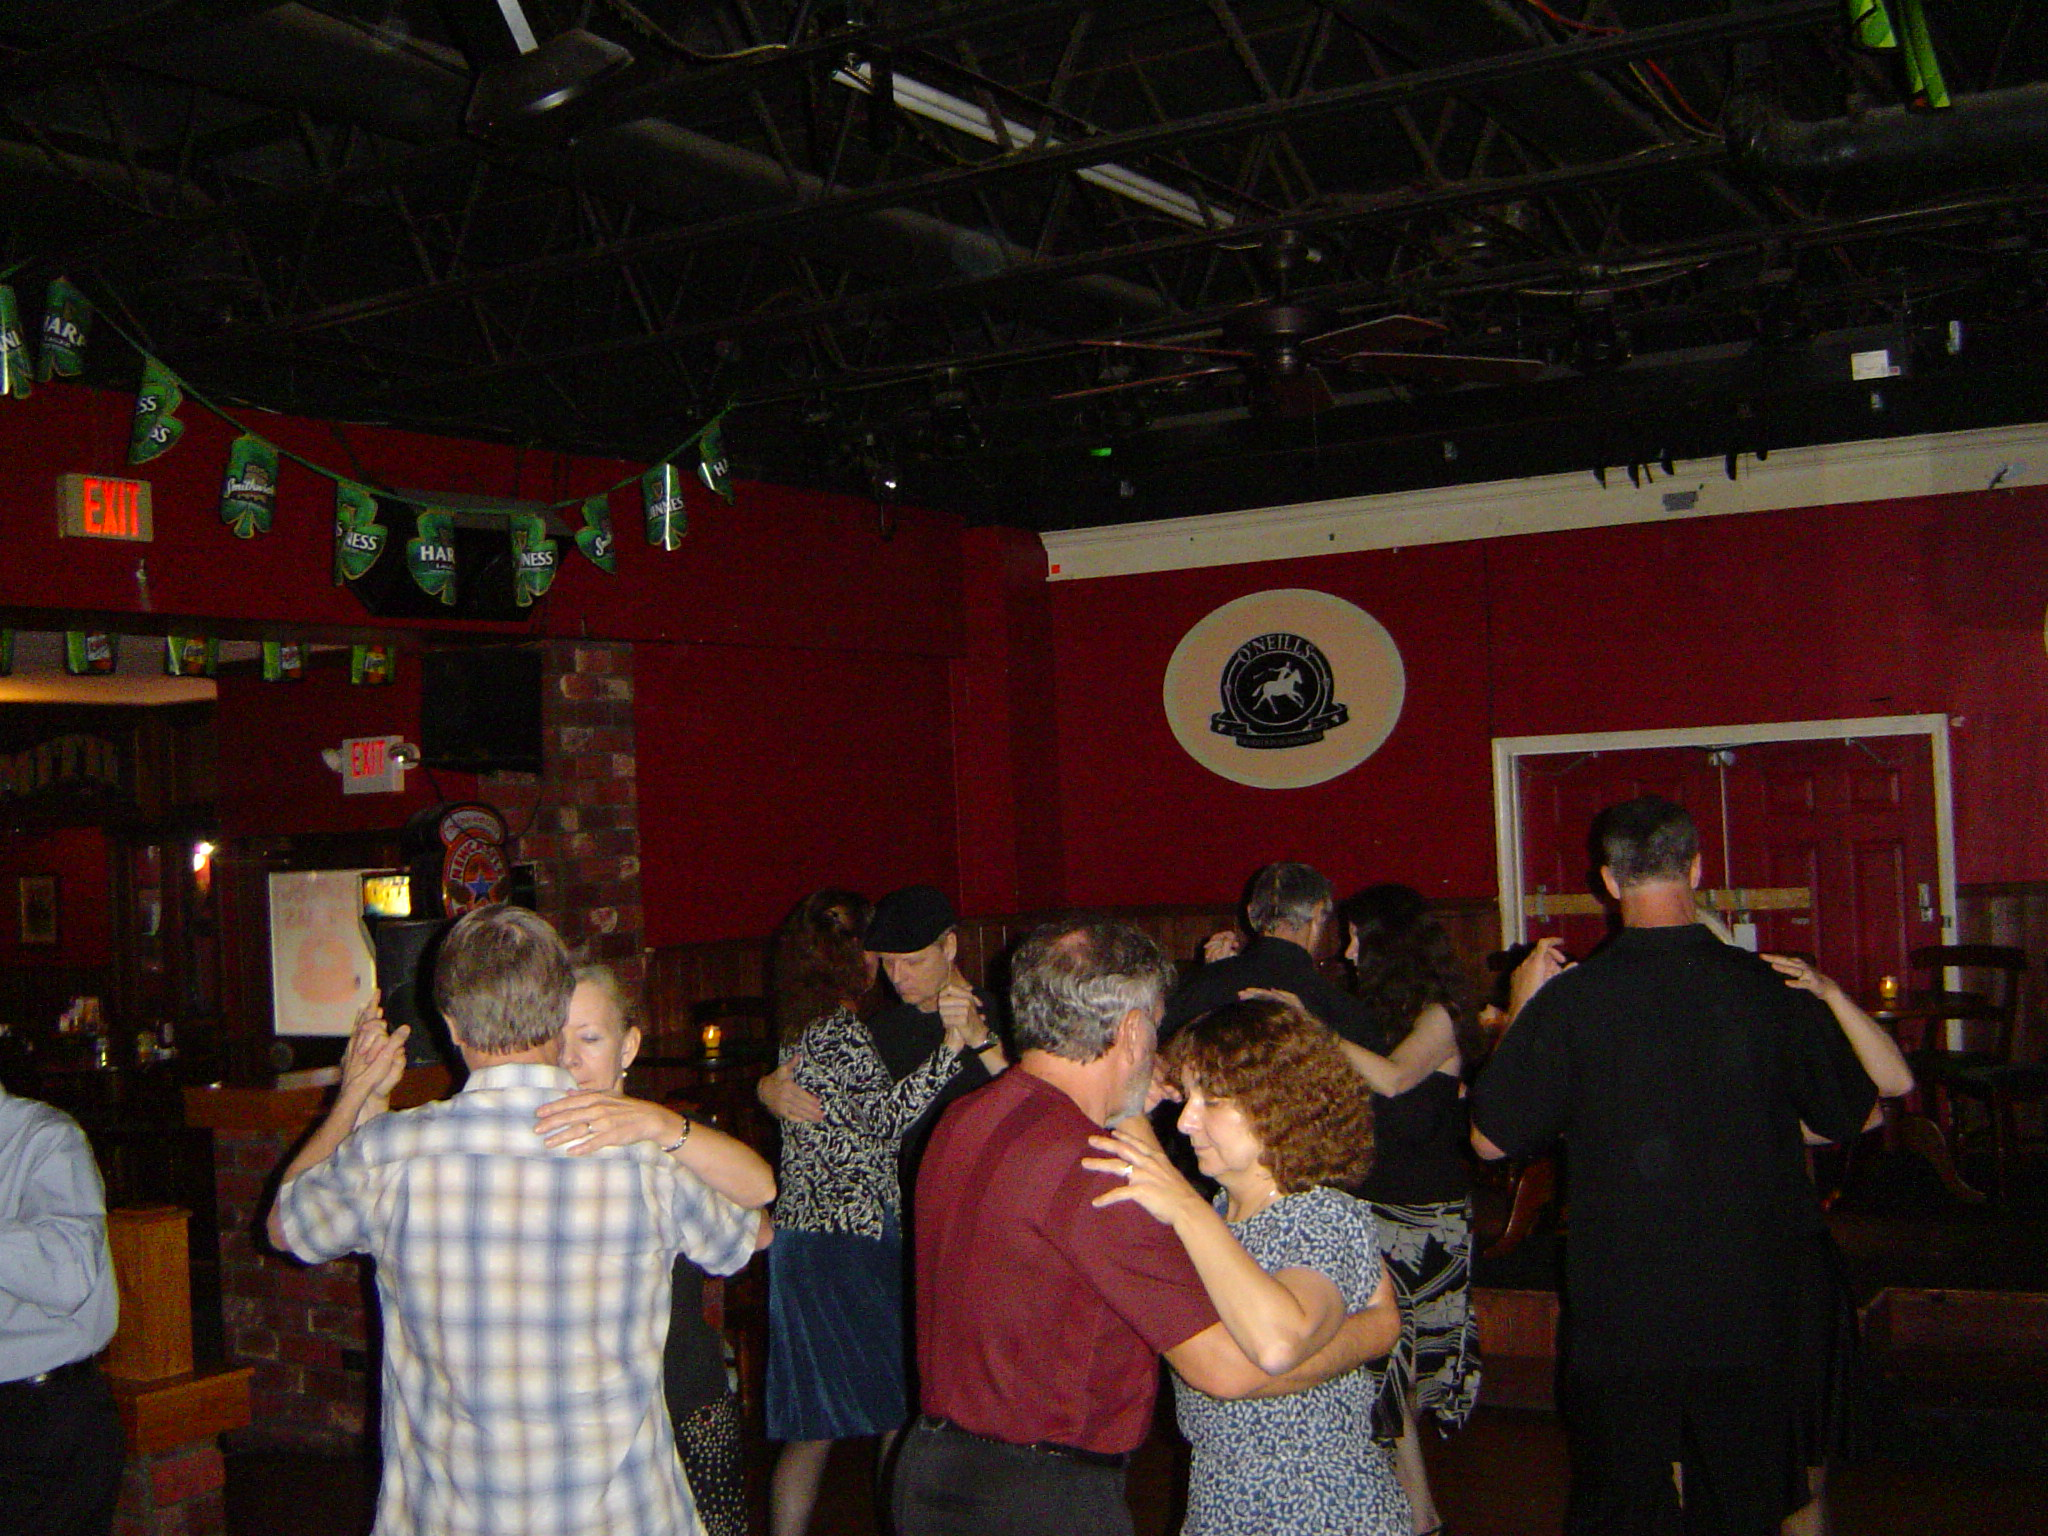 Milonga at O'Neill's Bar